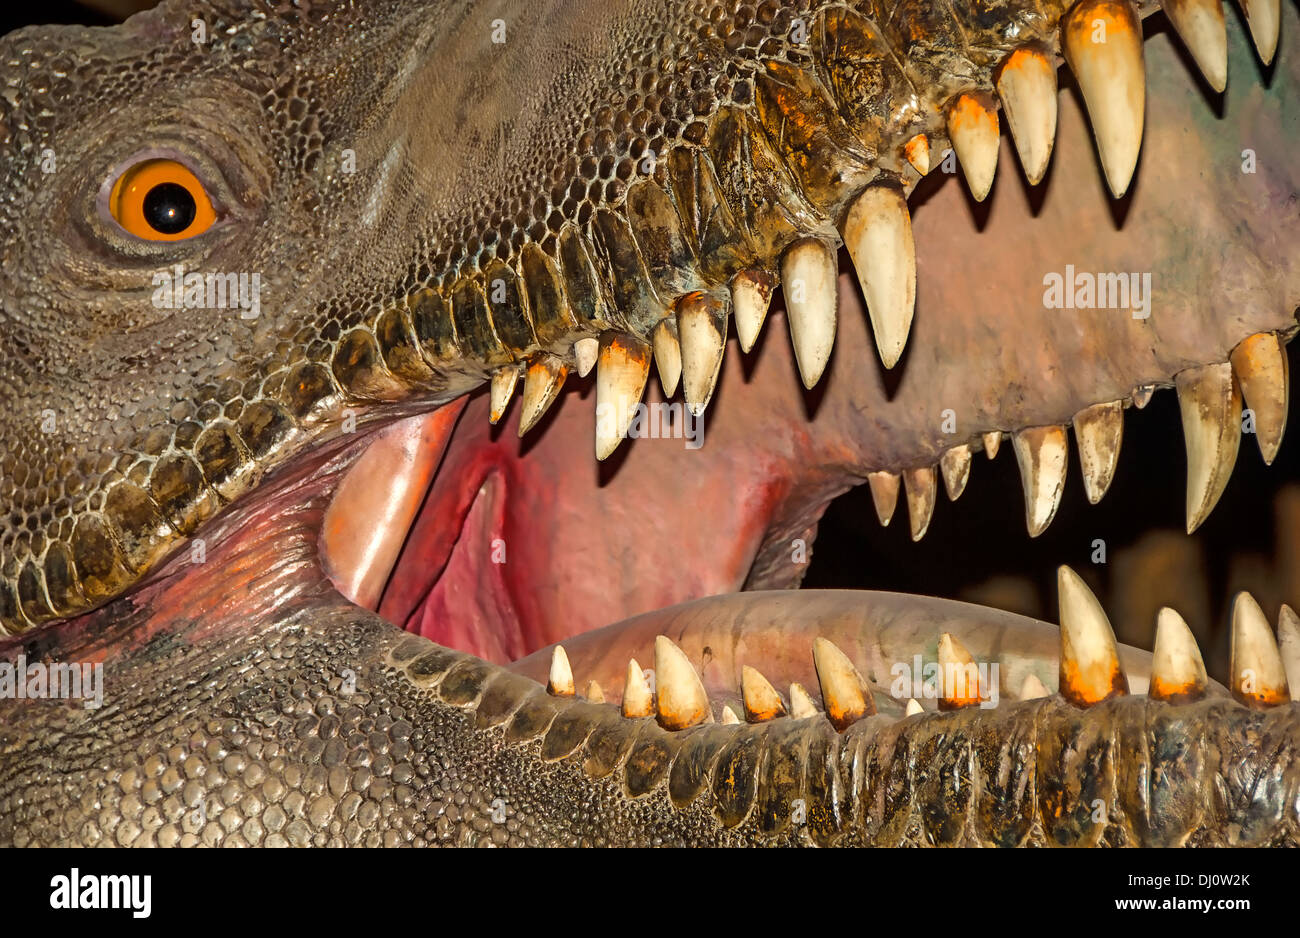 Tyrannosaurus rex was one of the largest meat-eating dinosaurs that ever lived and lived in North America. Stock Photo